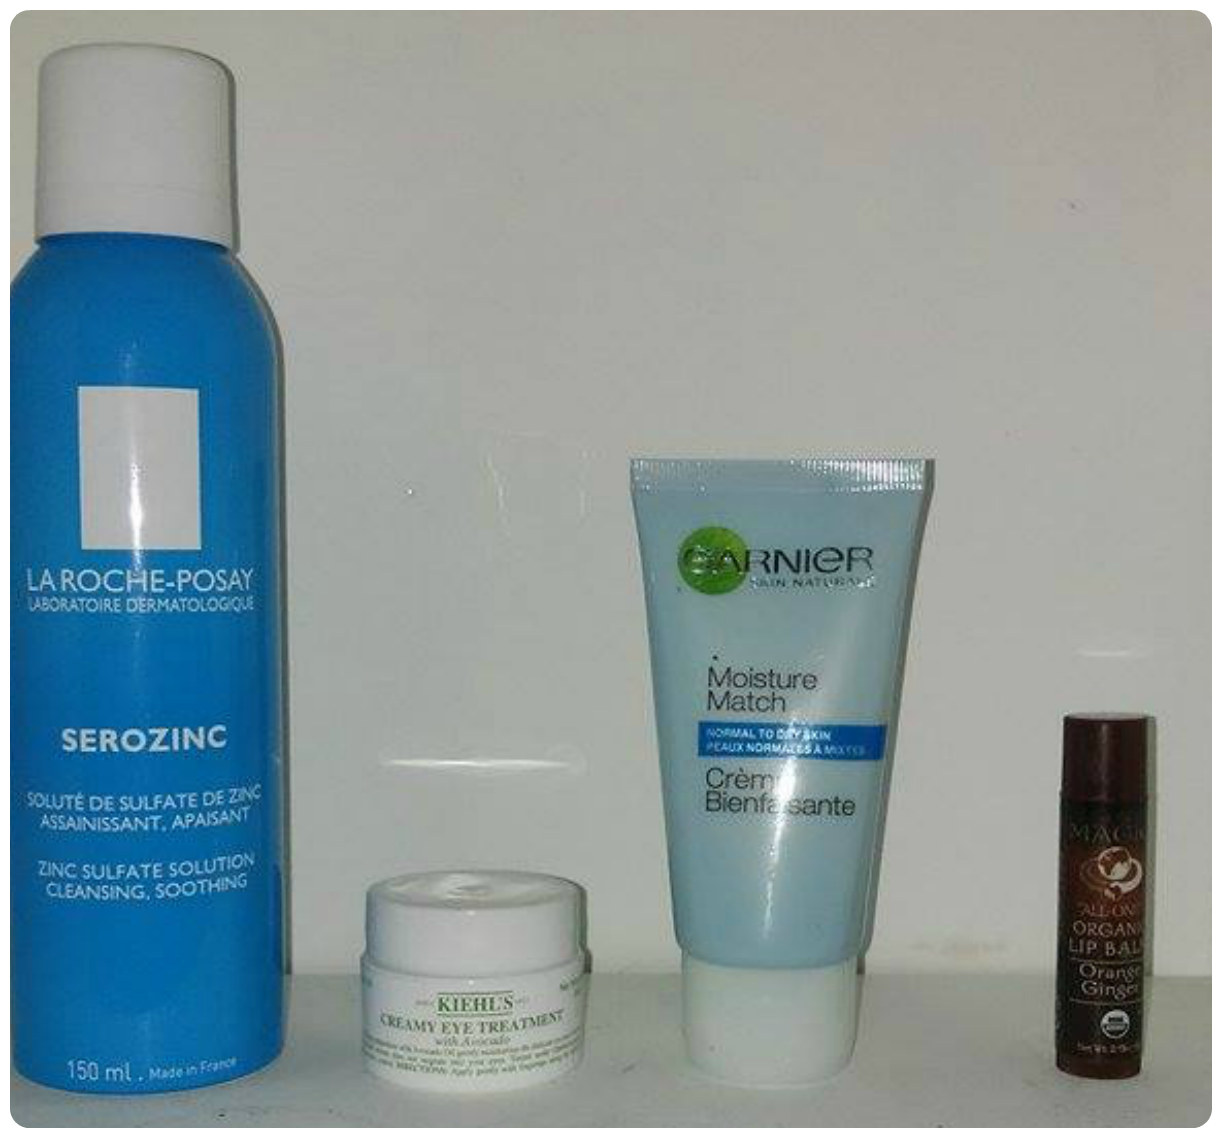 la roche posay serozinc, garnier moisture match normal to dry skin, dr bronner's magic lip balm, Kiehl's Avocado eye cream